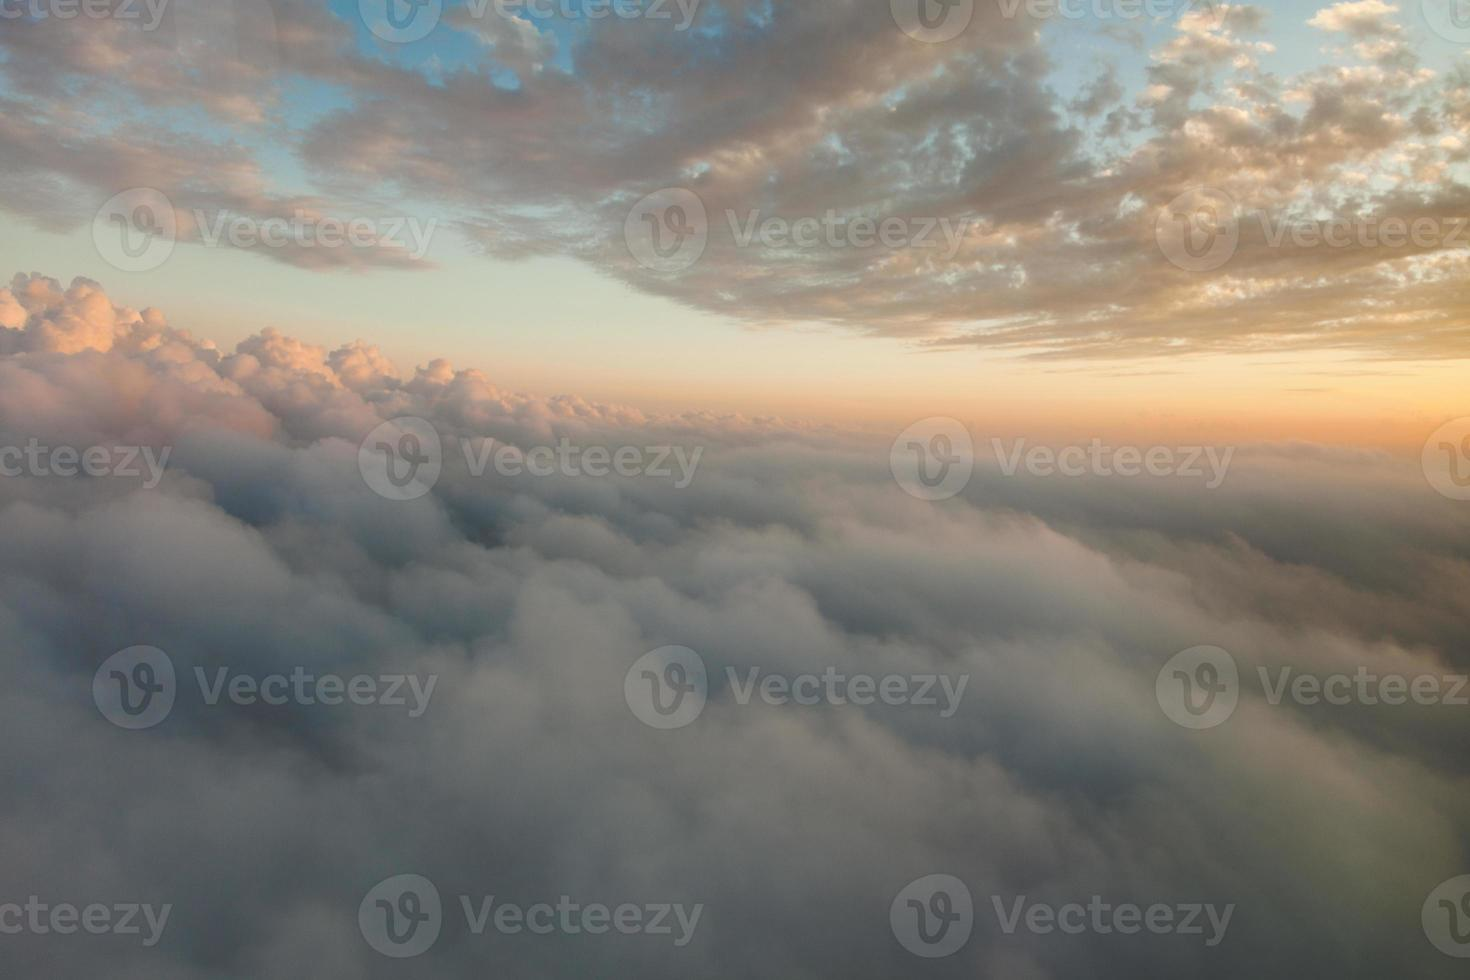 Clouds at sunset from airplane window photo